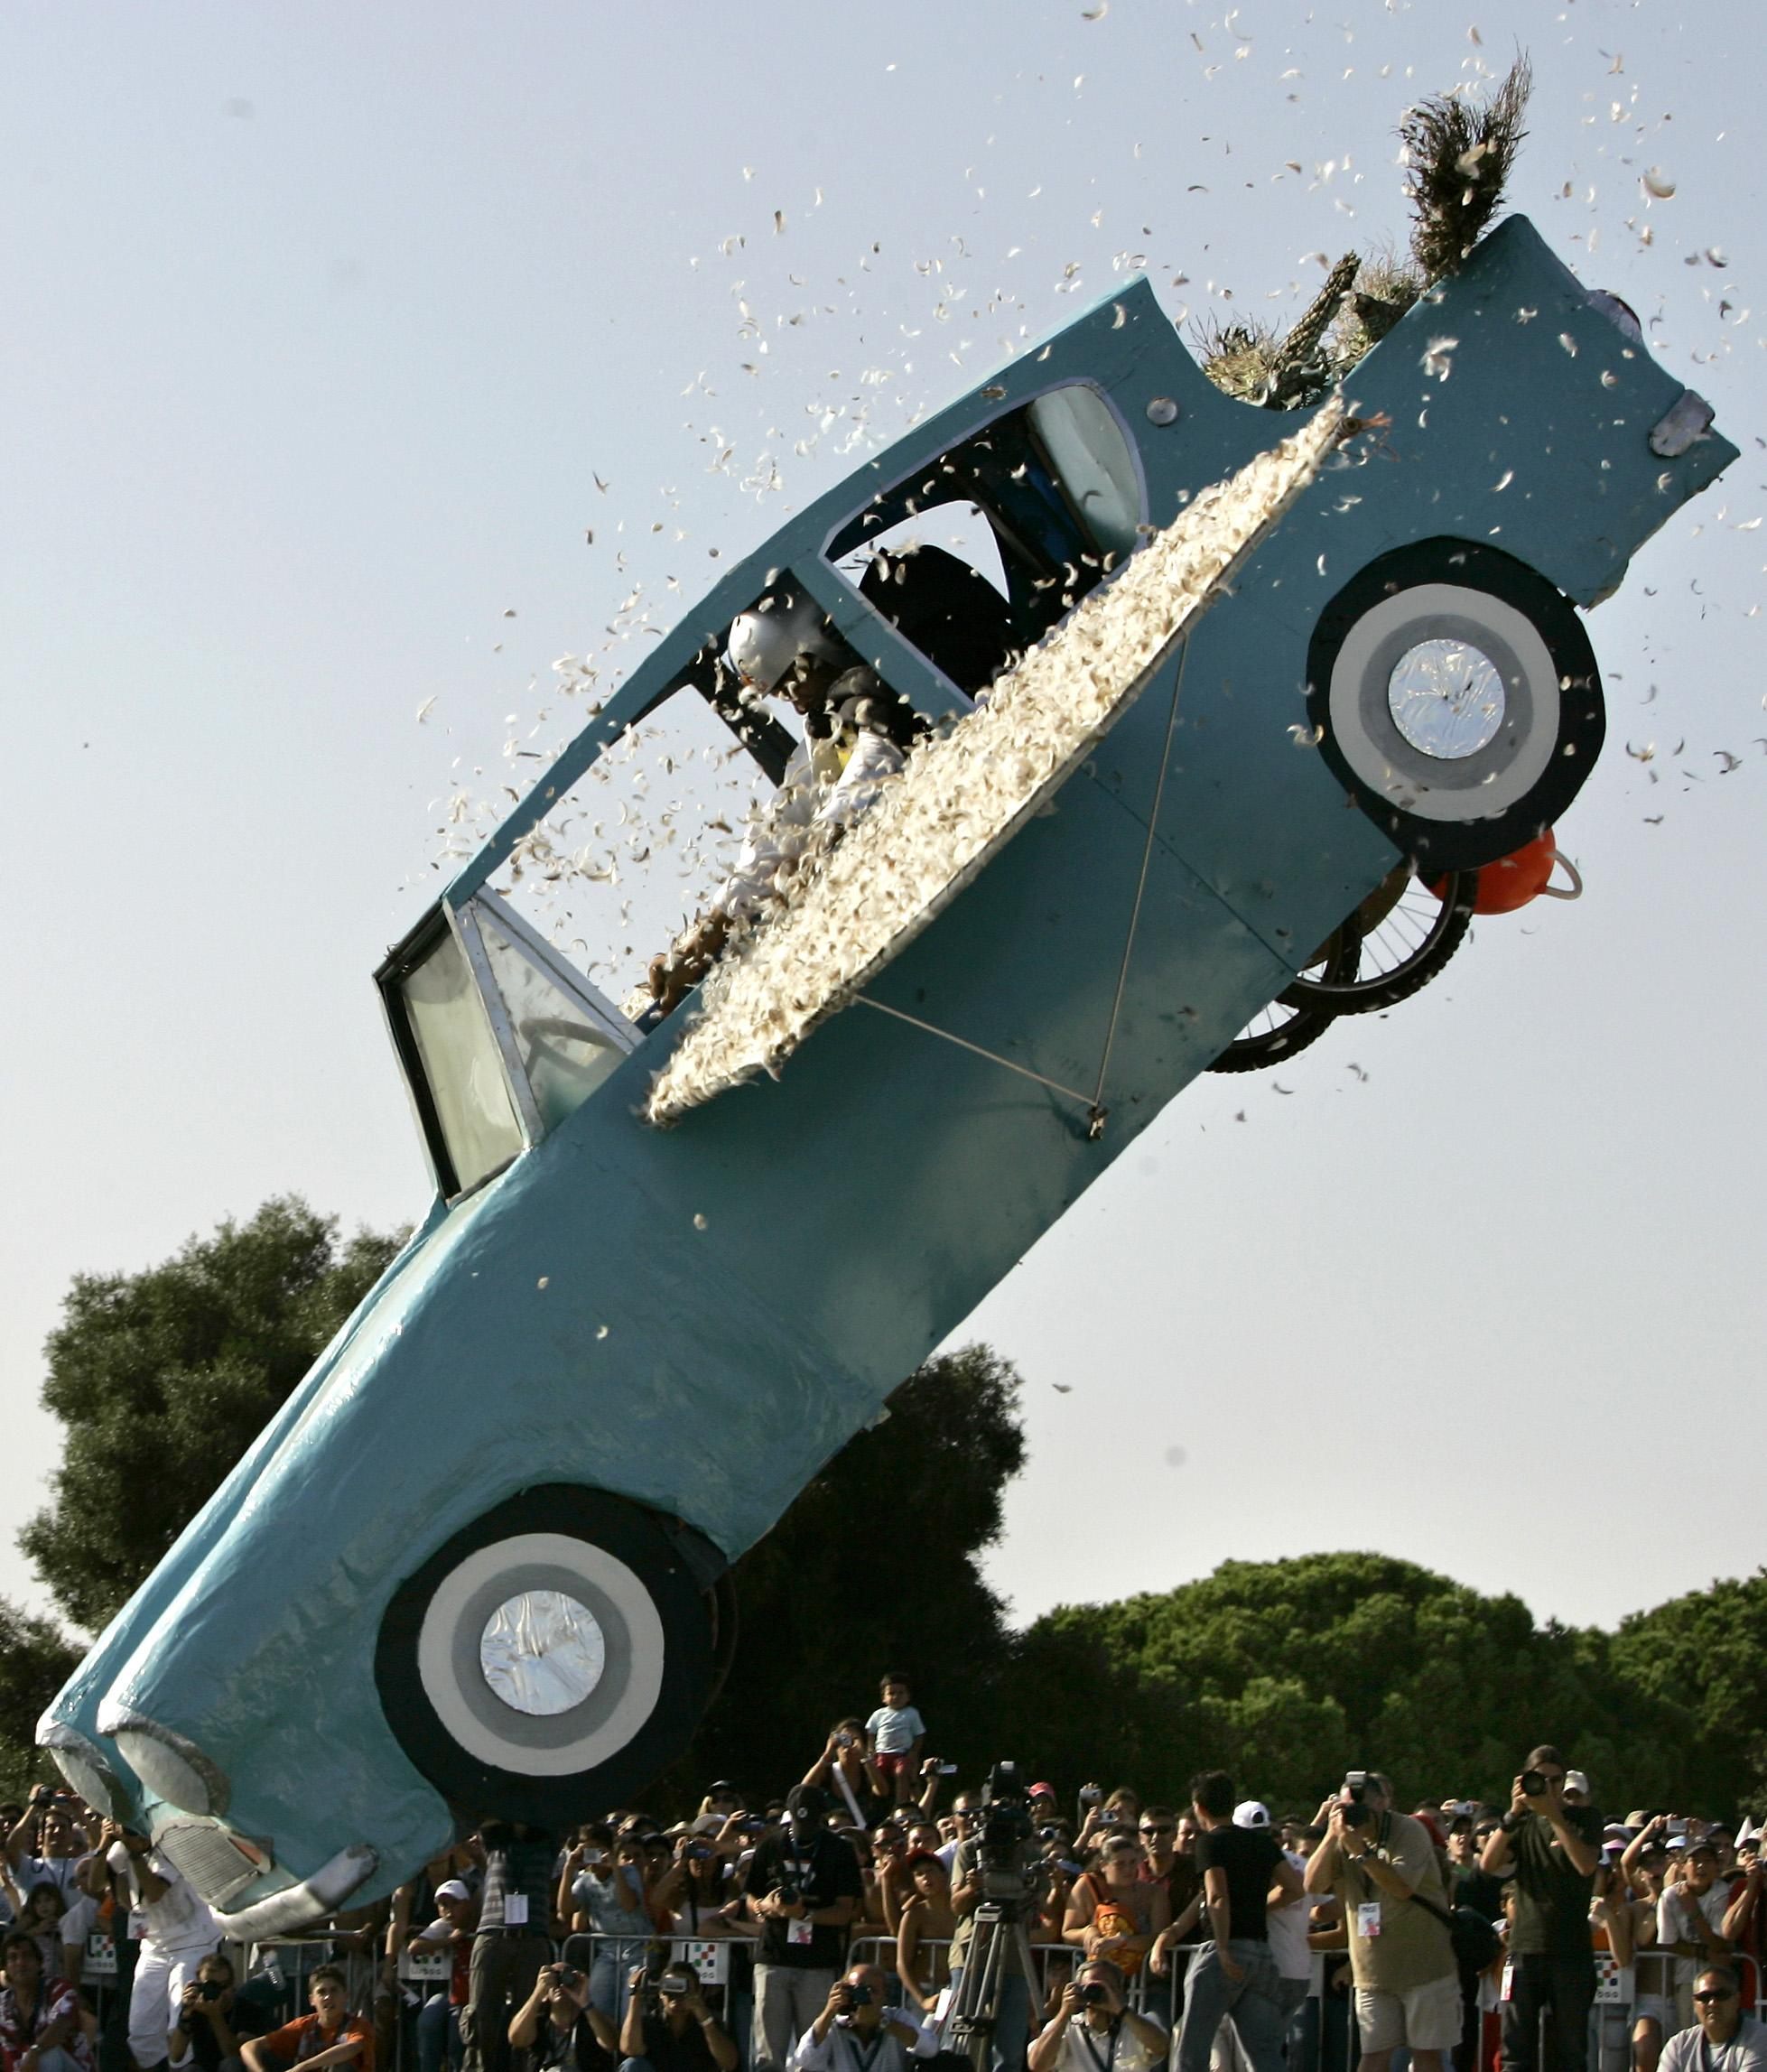 The car of Ana Catarina Durao loses its wing feathers and heads towards the river Tagus during a Flugtag, Wings' Day, sponsored by a soft drinks company, Saturday, Sept. 9, 2006, in Lisbon, Portugal. Thousands flocked to the river bank to watch the 50 contestants and their flying machines participating in the second edition of the Lisbon Flugtag. (AP Photo/Armando Franca)